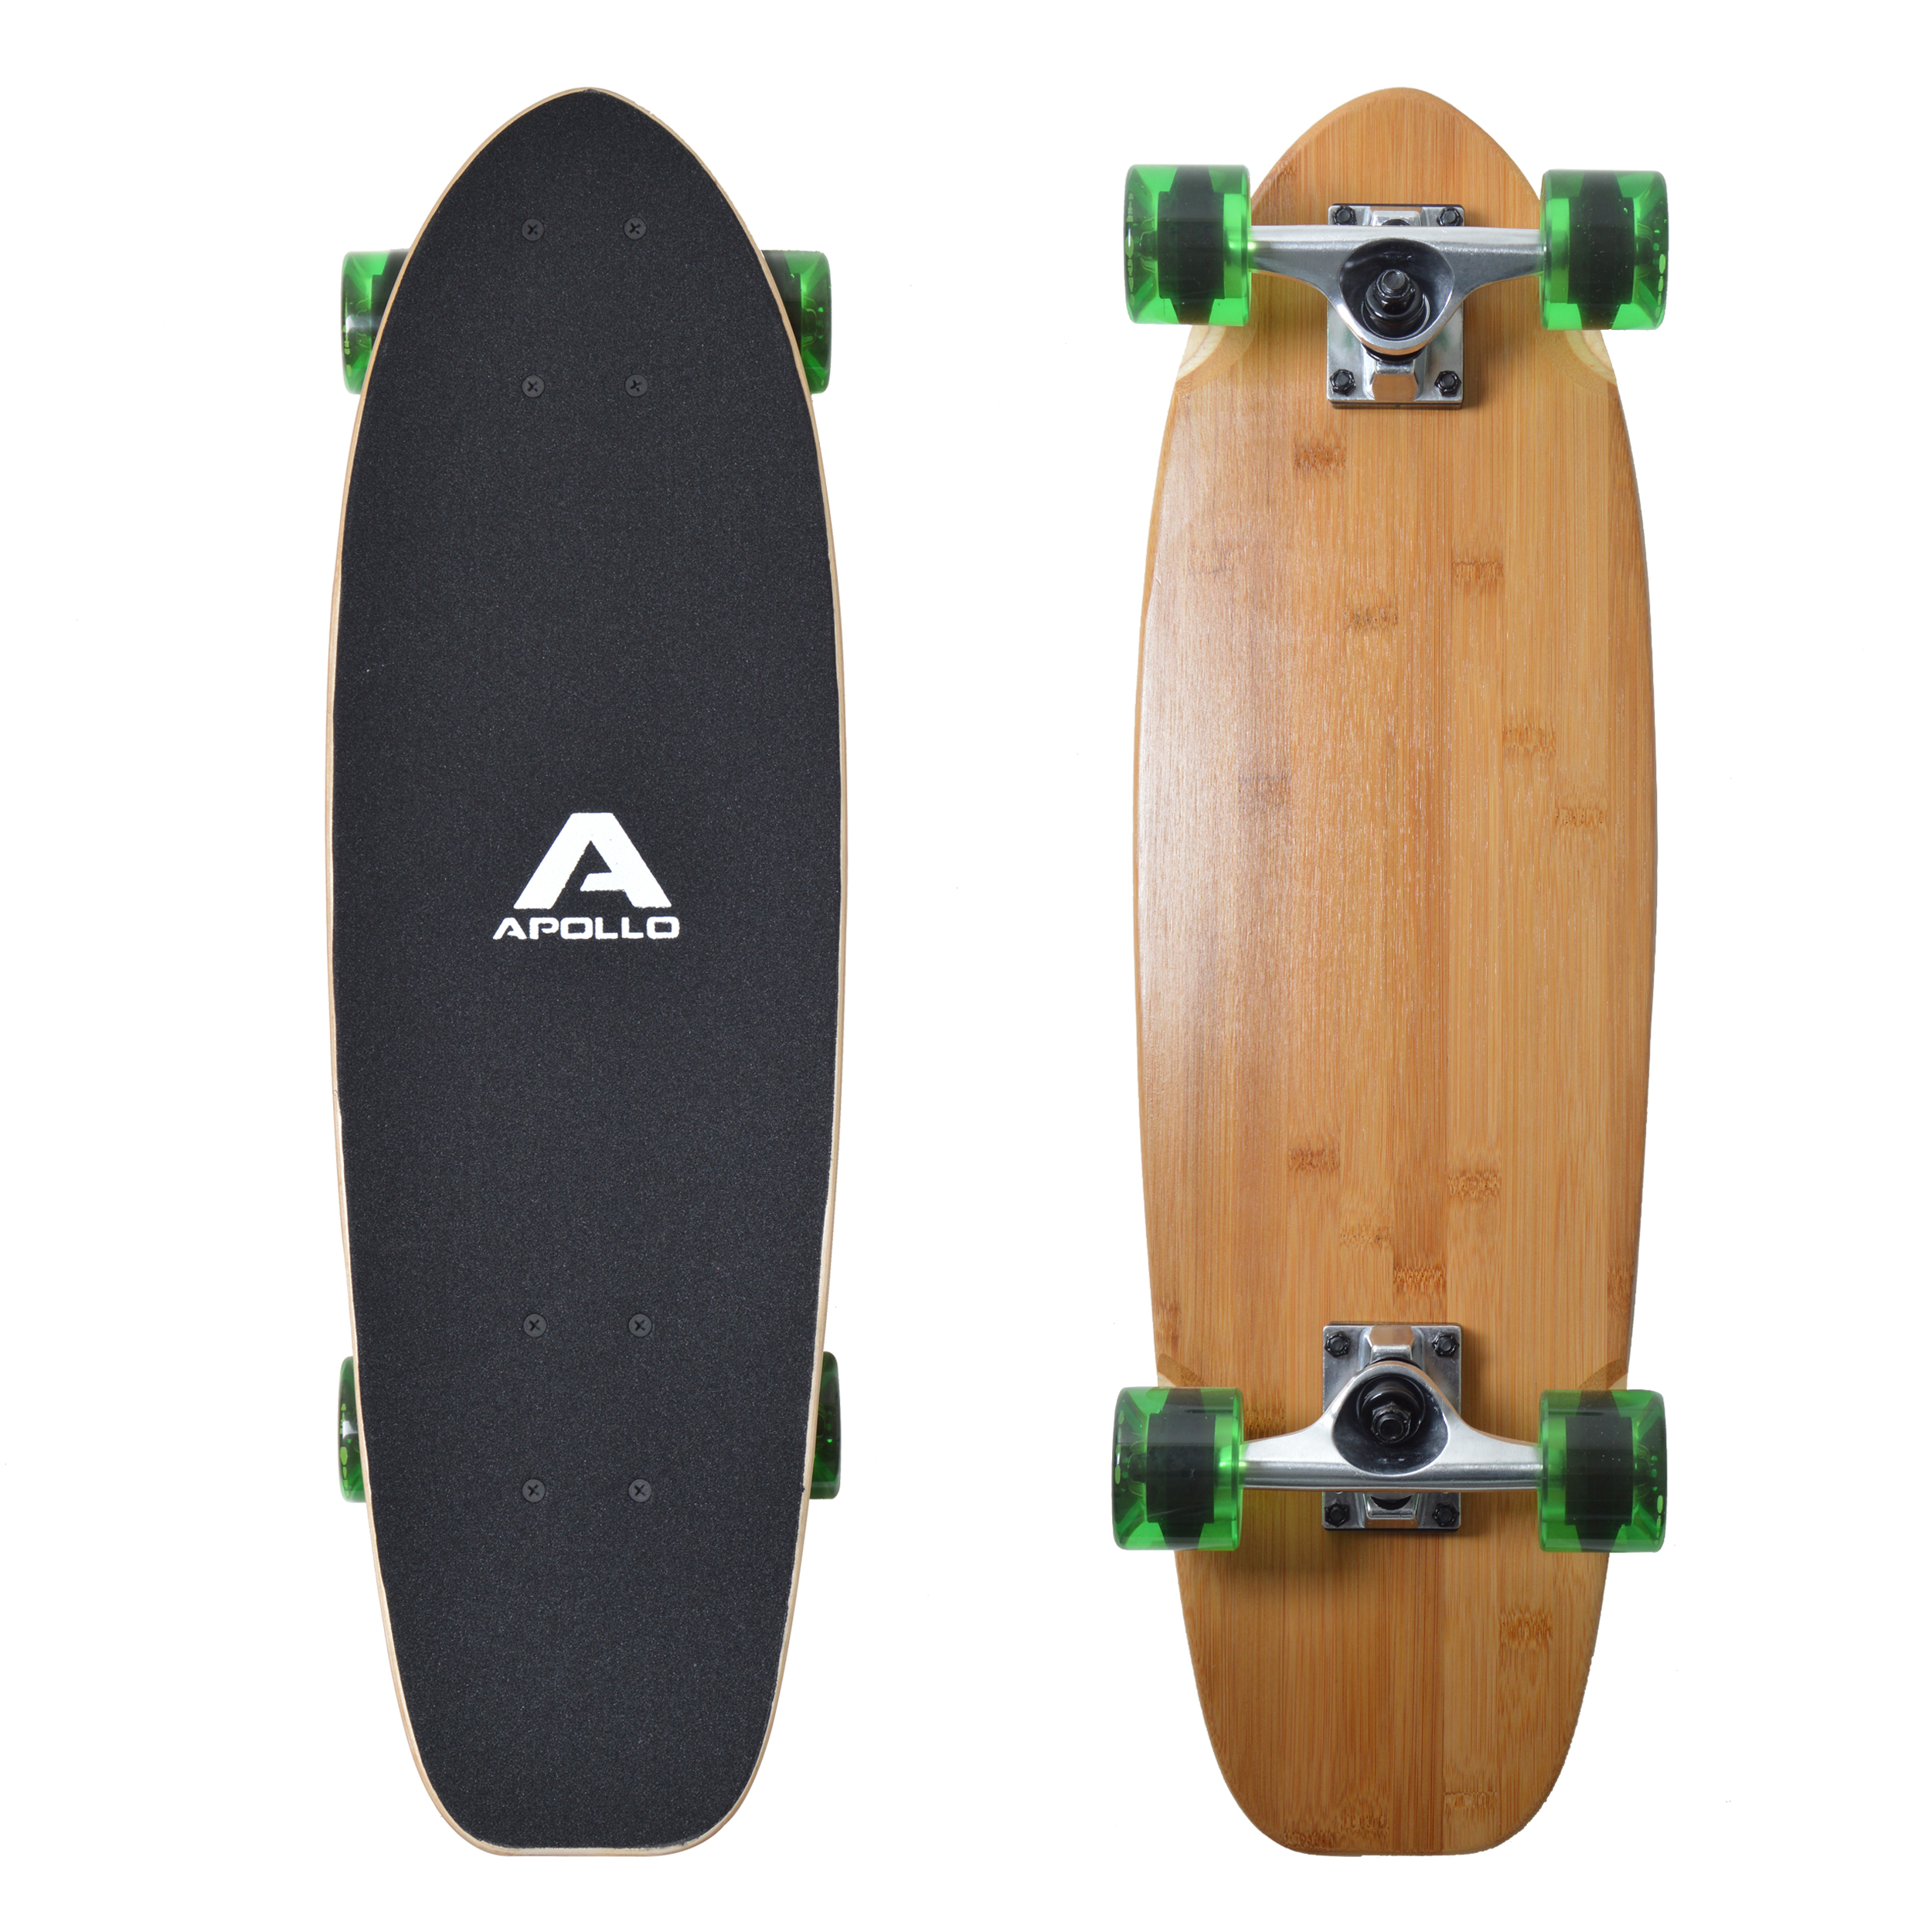 apollo mini holz longboard komplettboard skateboard midi vintage style ebay. Black Bedroom Furniture Sets. Home Design Ideas